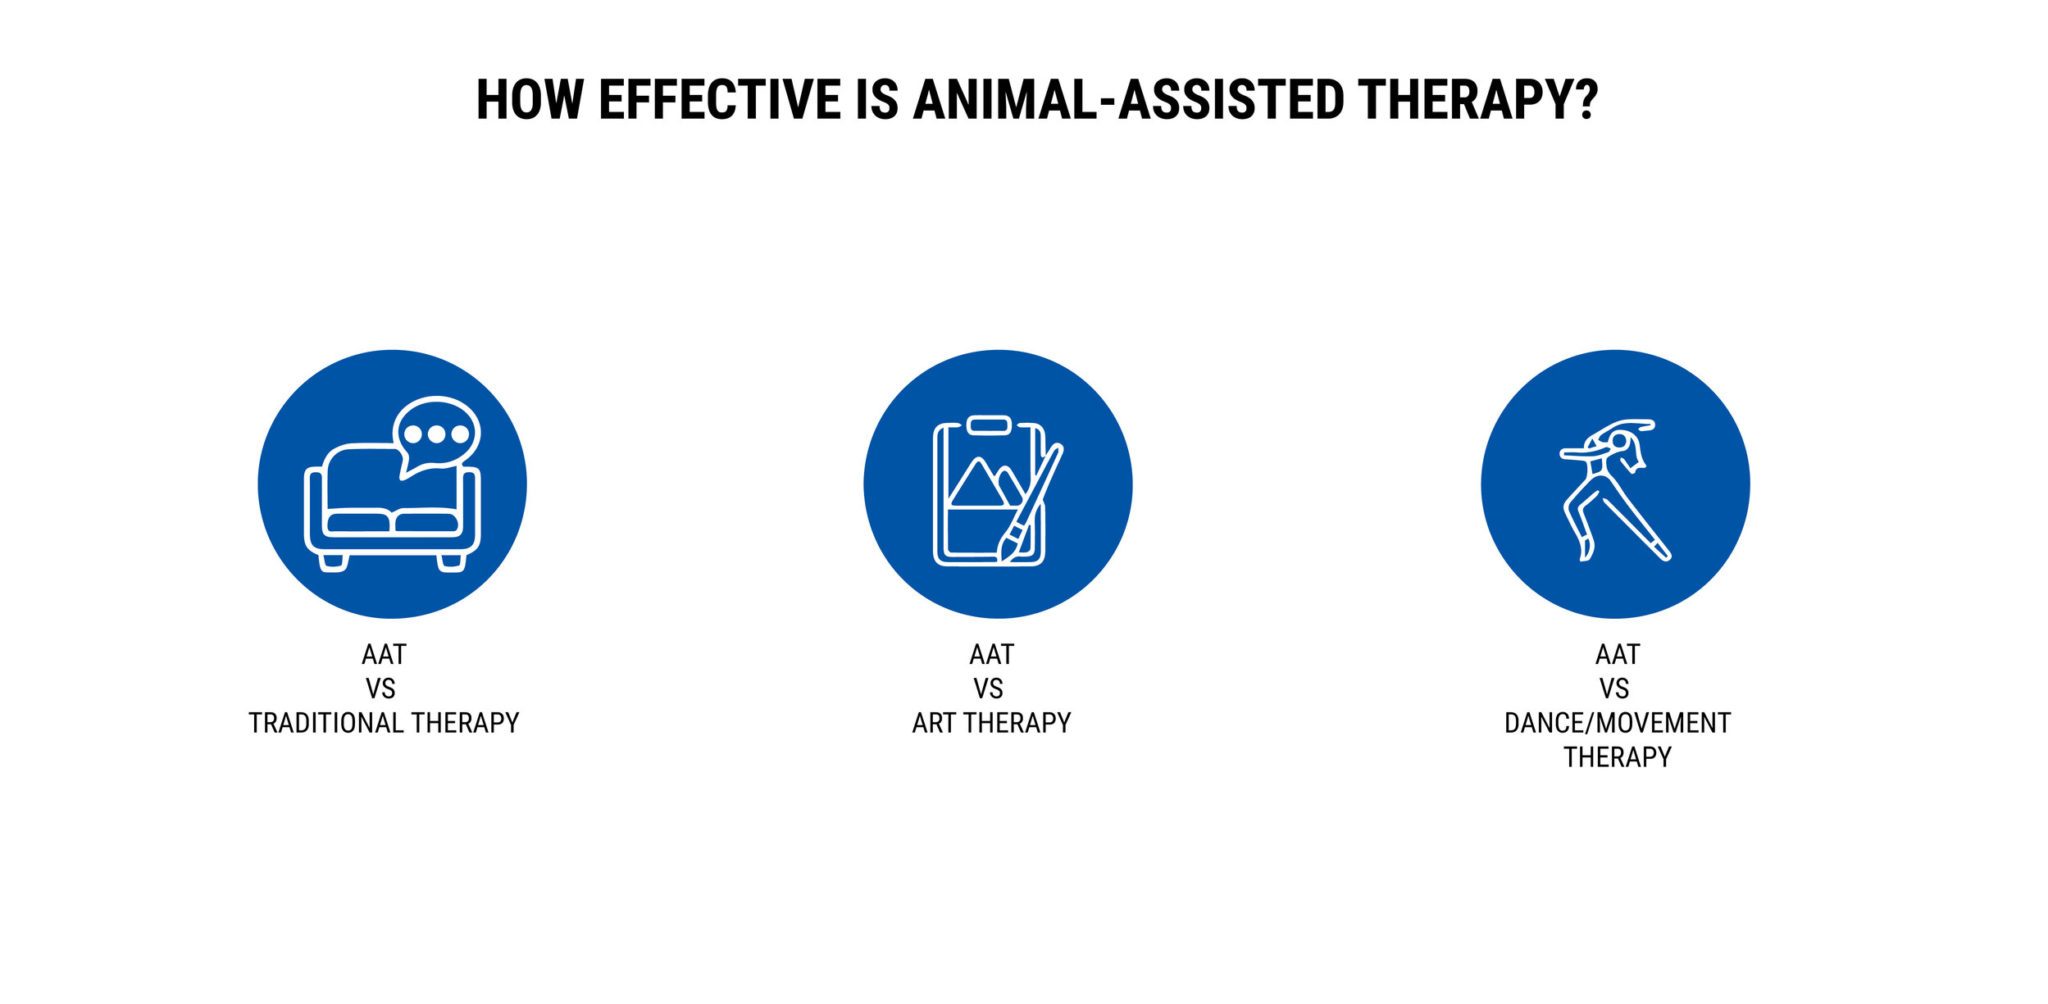 HOW EFFECTIVE IS ANIMAL-ASSISTED THERAPY